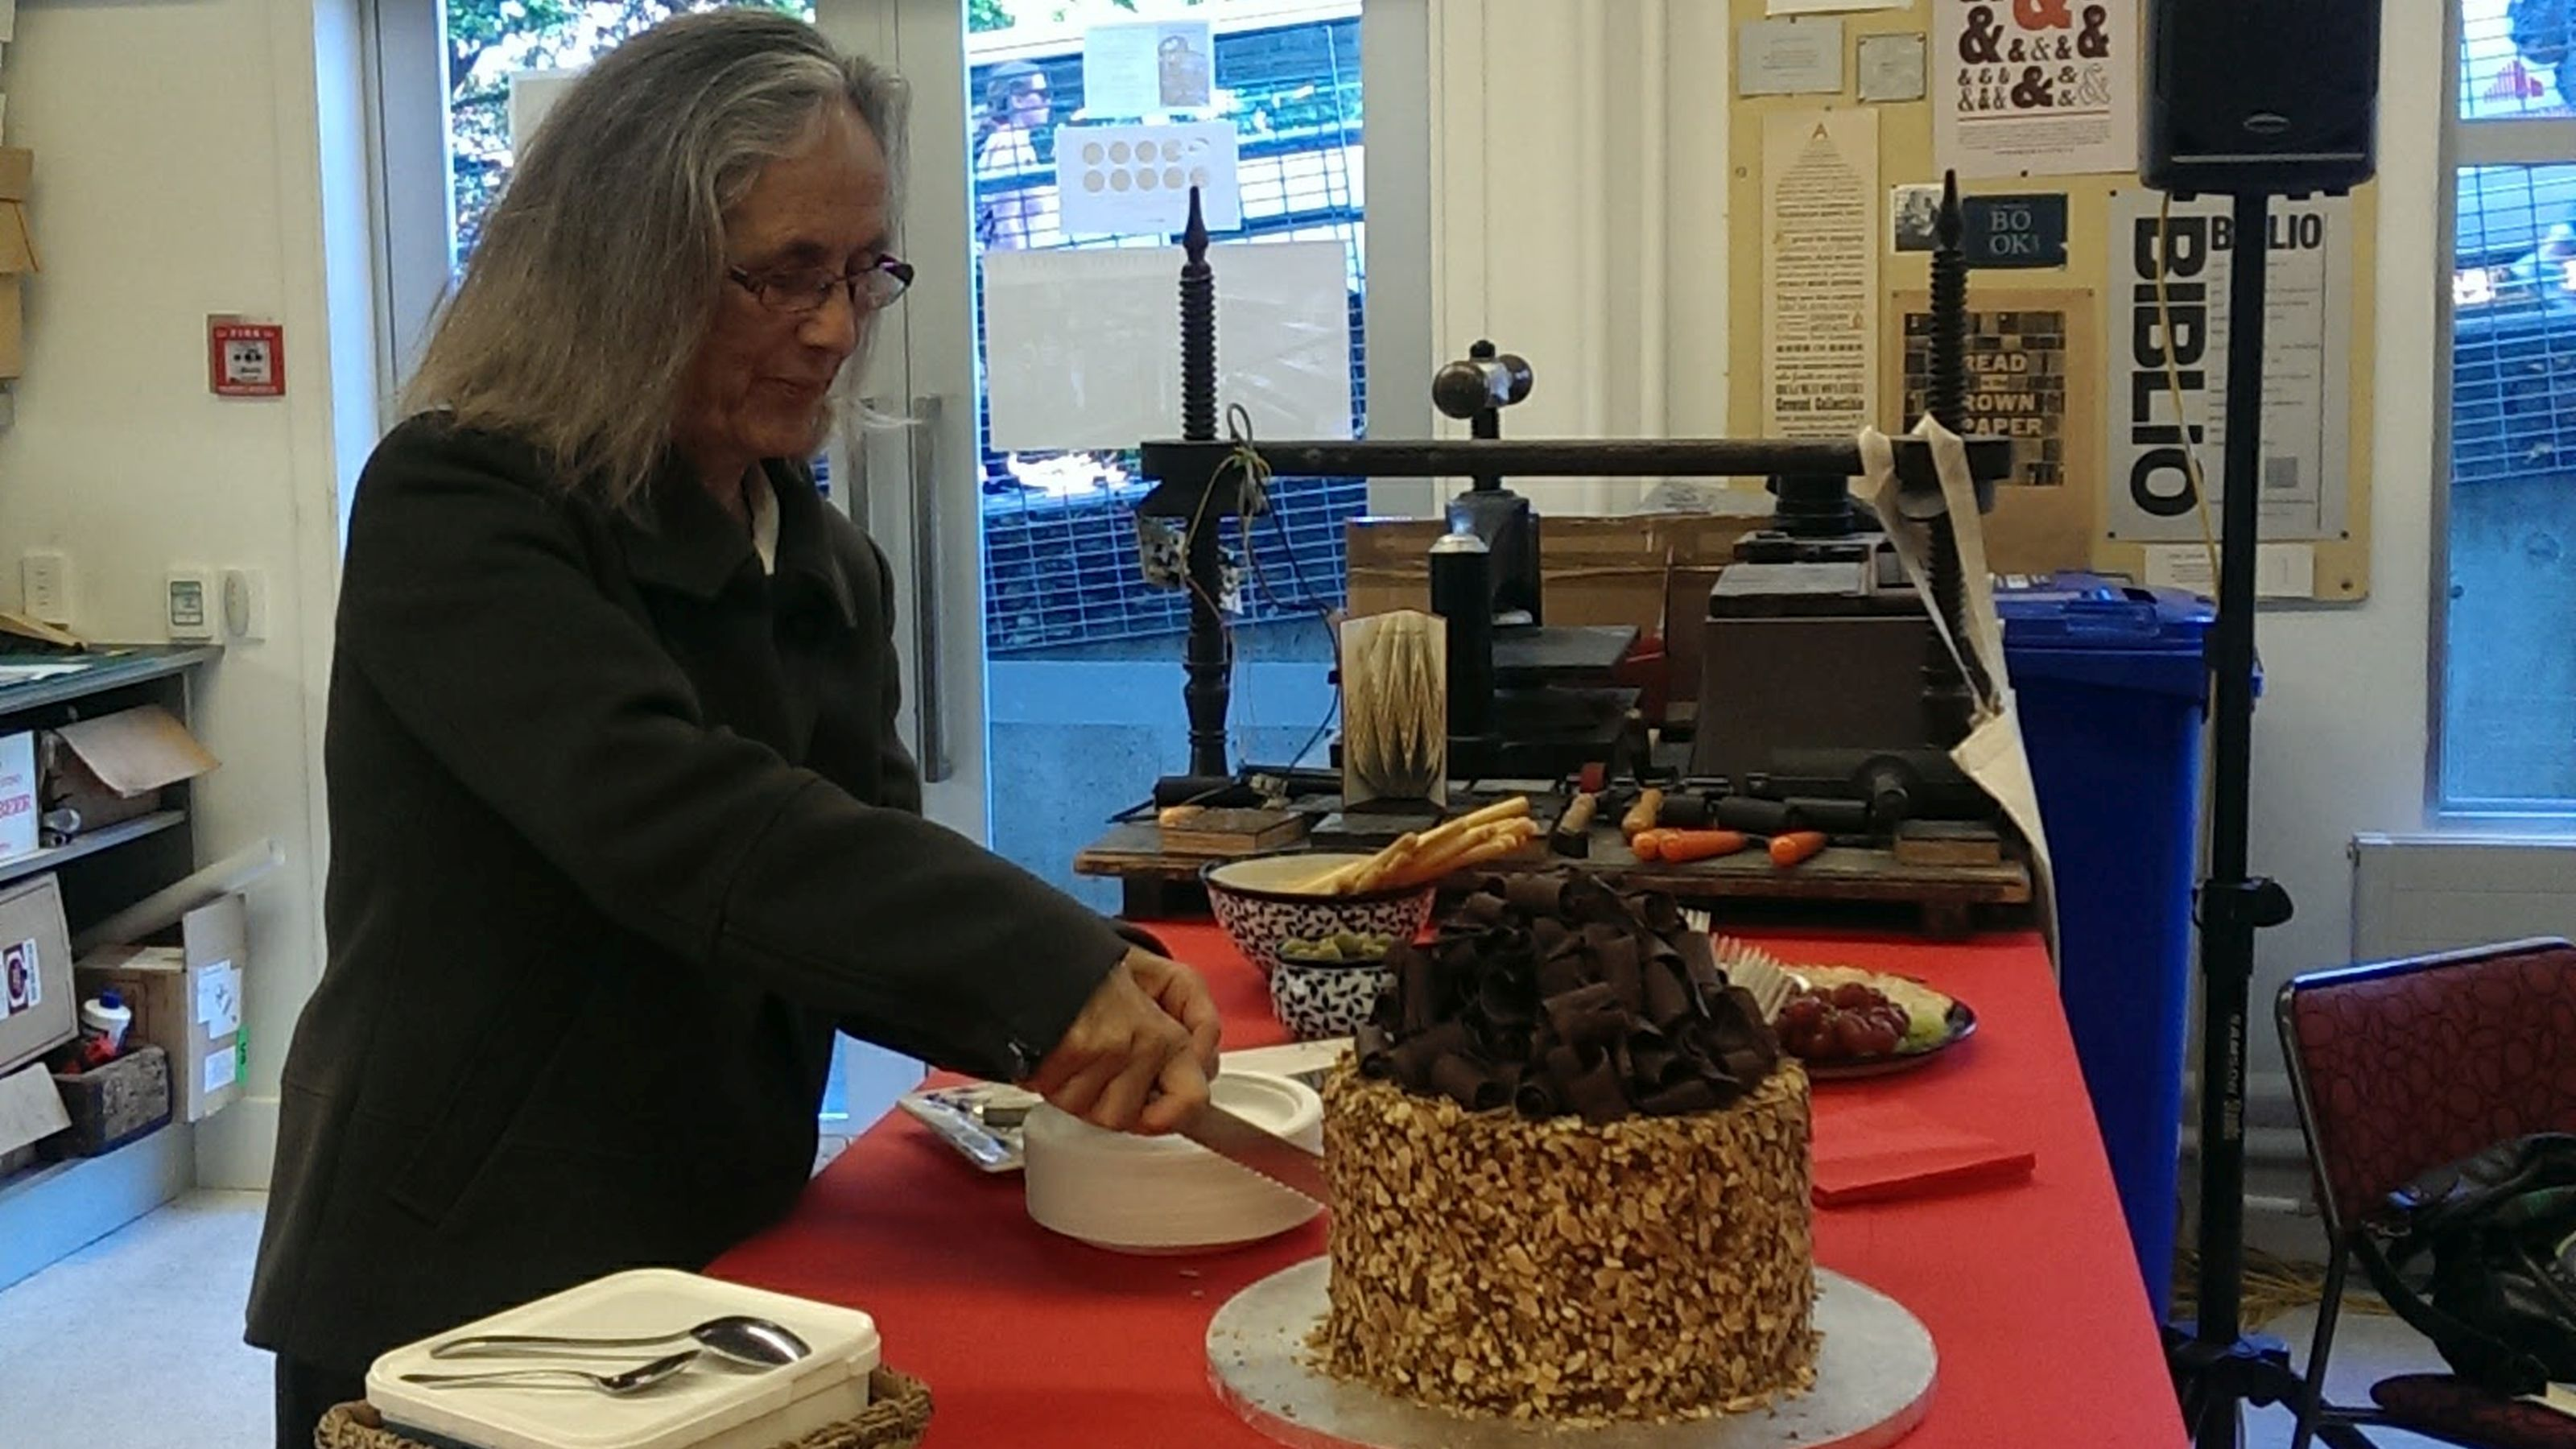 Author Patricia Grace cuts a very elaborate birthday cake topped with chocolate curls.